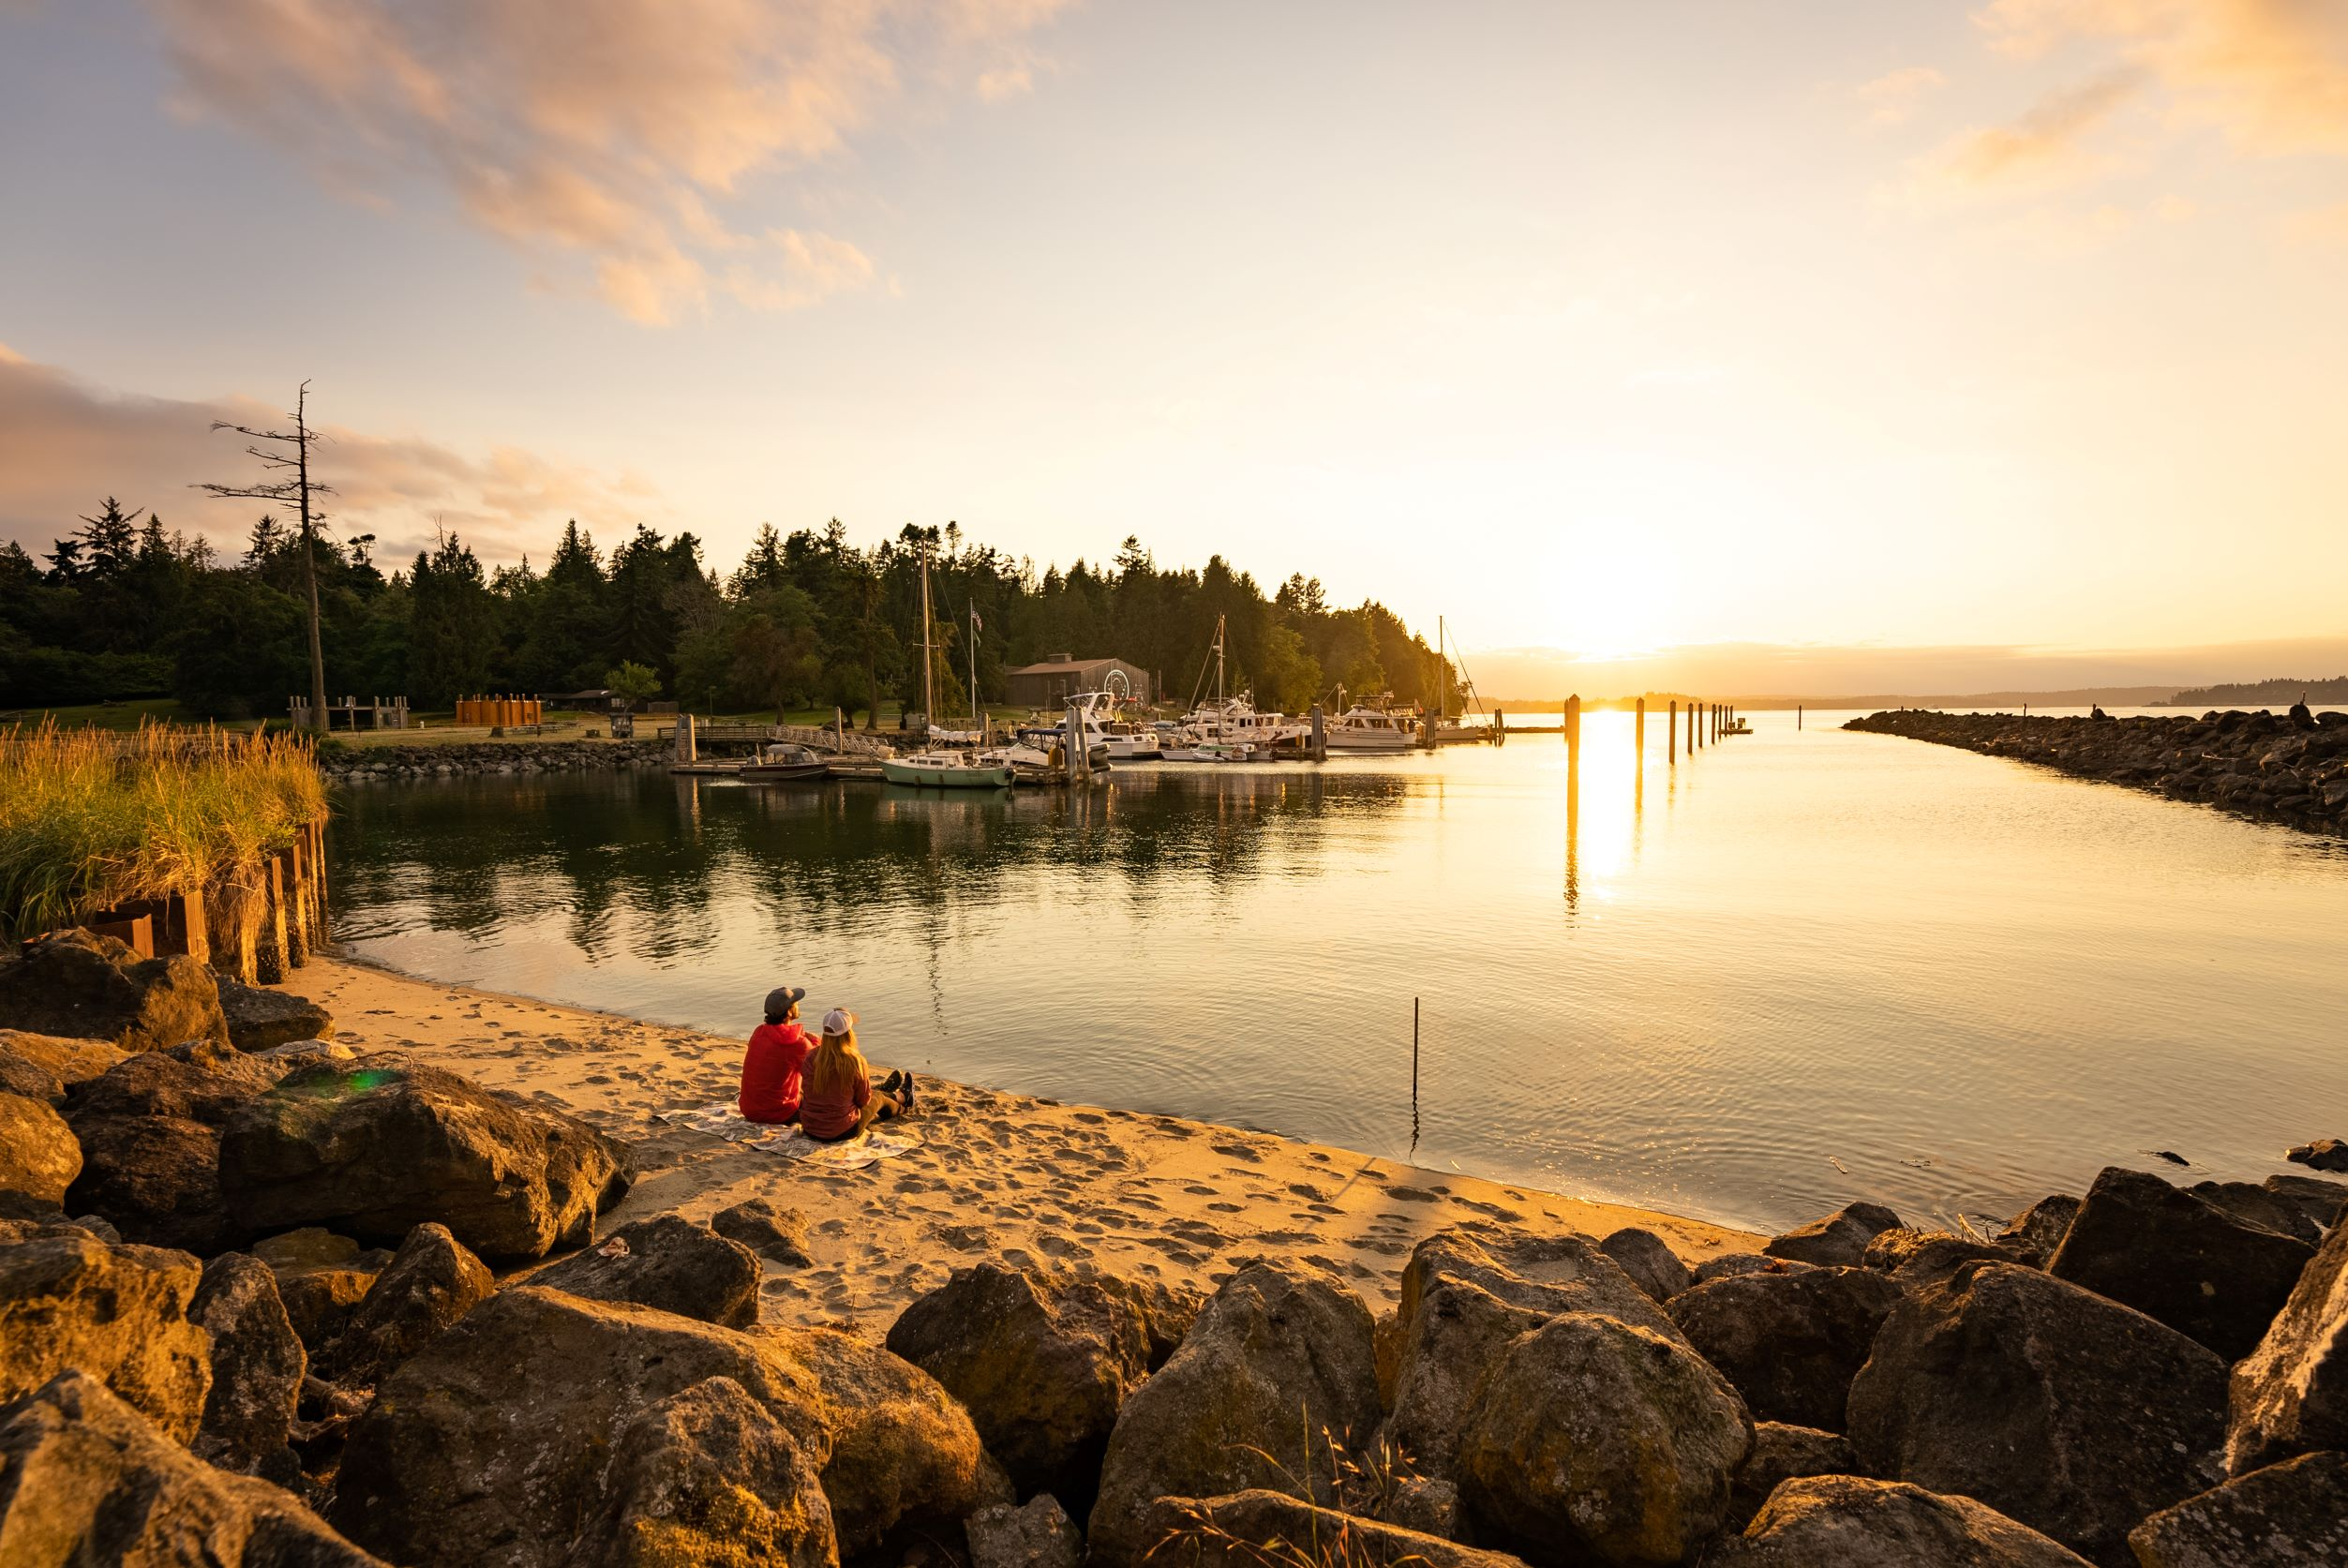 Two people sitting on beach near a boat marina with boats in midground and sunset in background